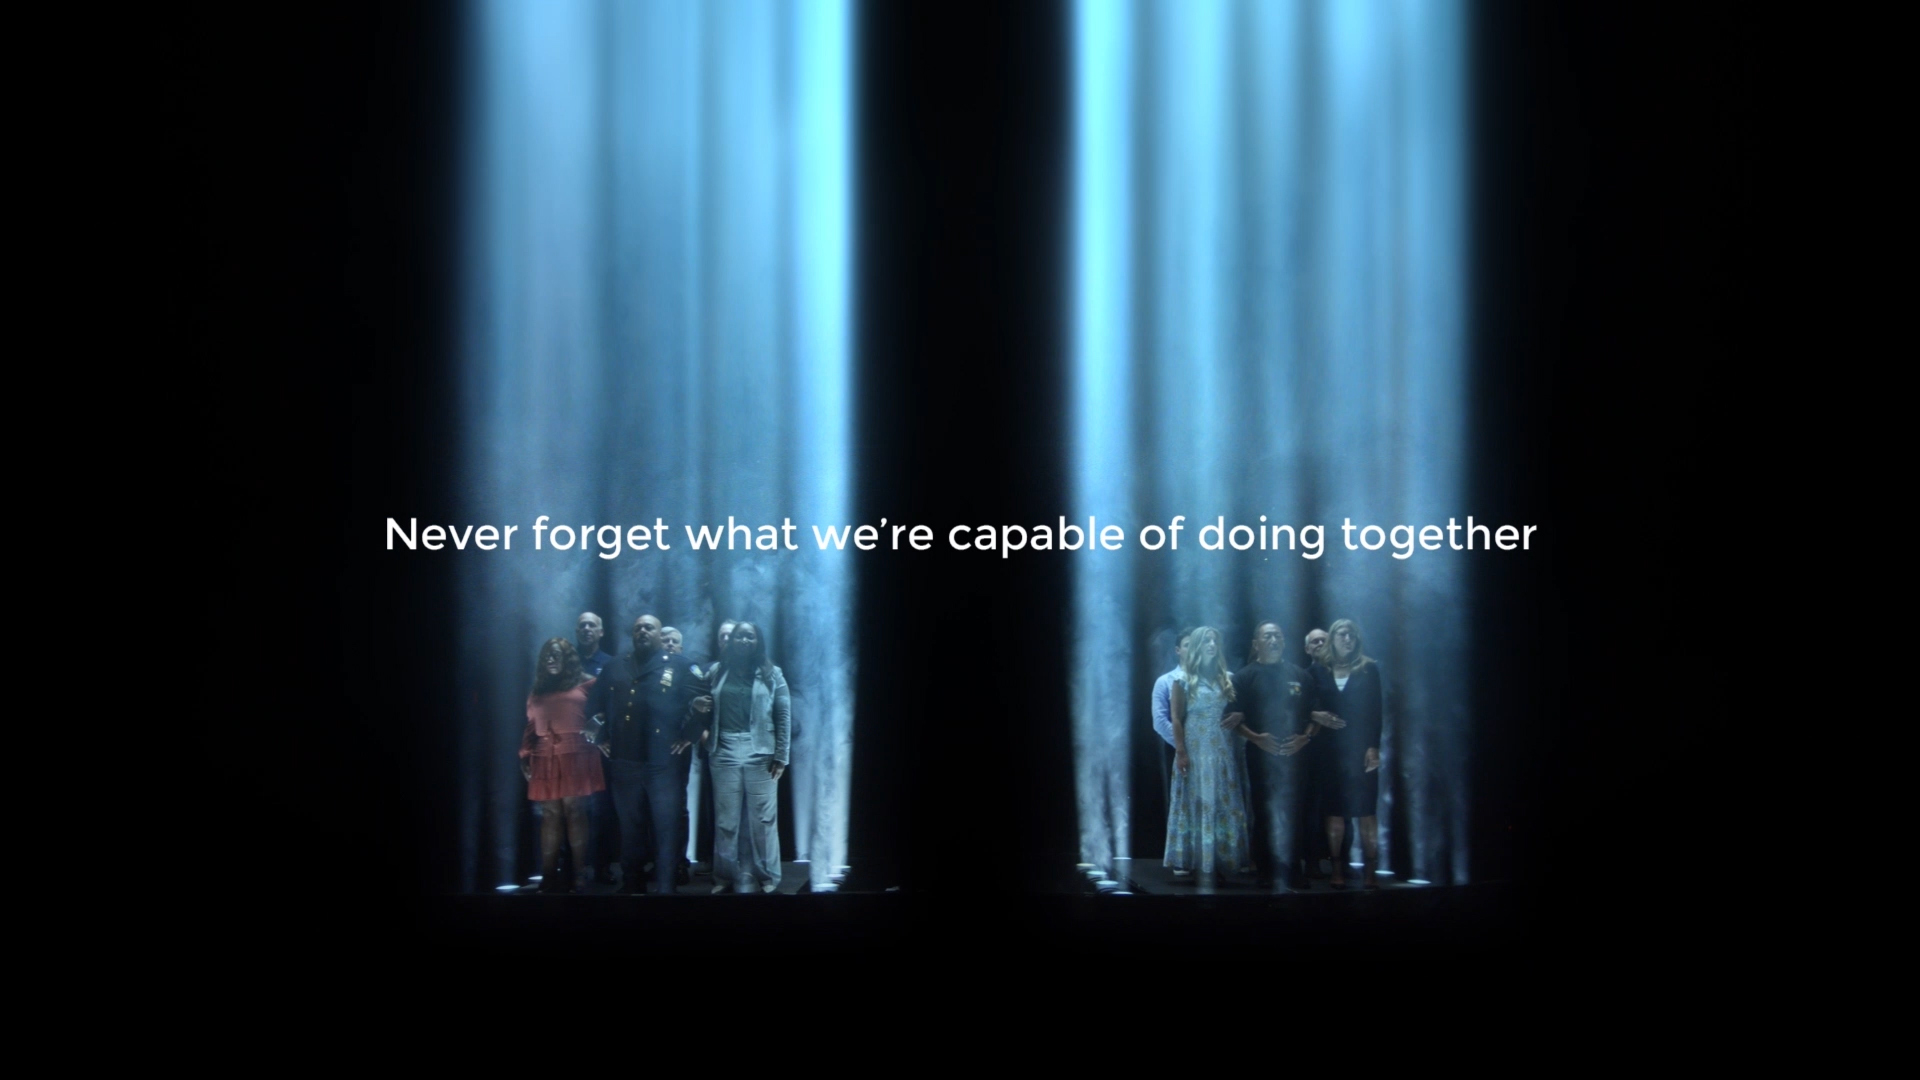 9/11 Day 2021 PSA campaign State of Unitedness, featuring 23 members of the 9/11 community, calls upon all Americans to join together in unity and engage in acts of kindness and service in observance of the 20-year remembrance of 9/11. Visit 911day.org.